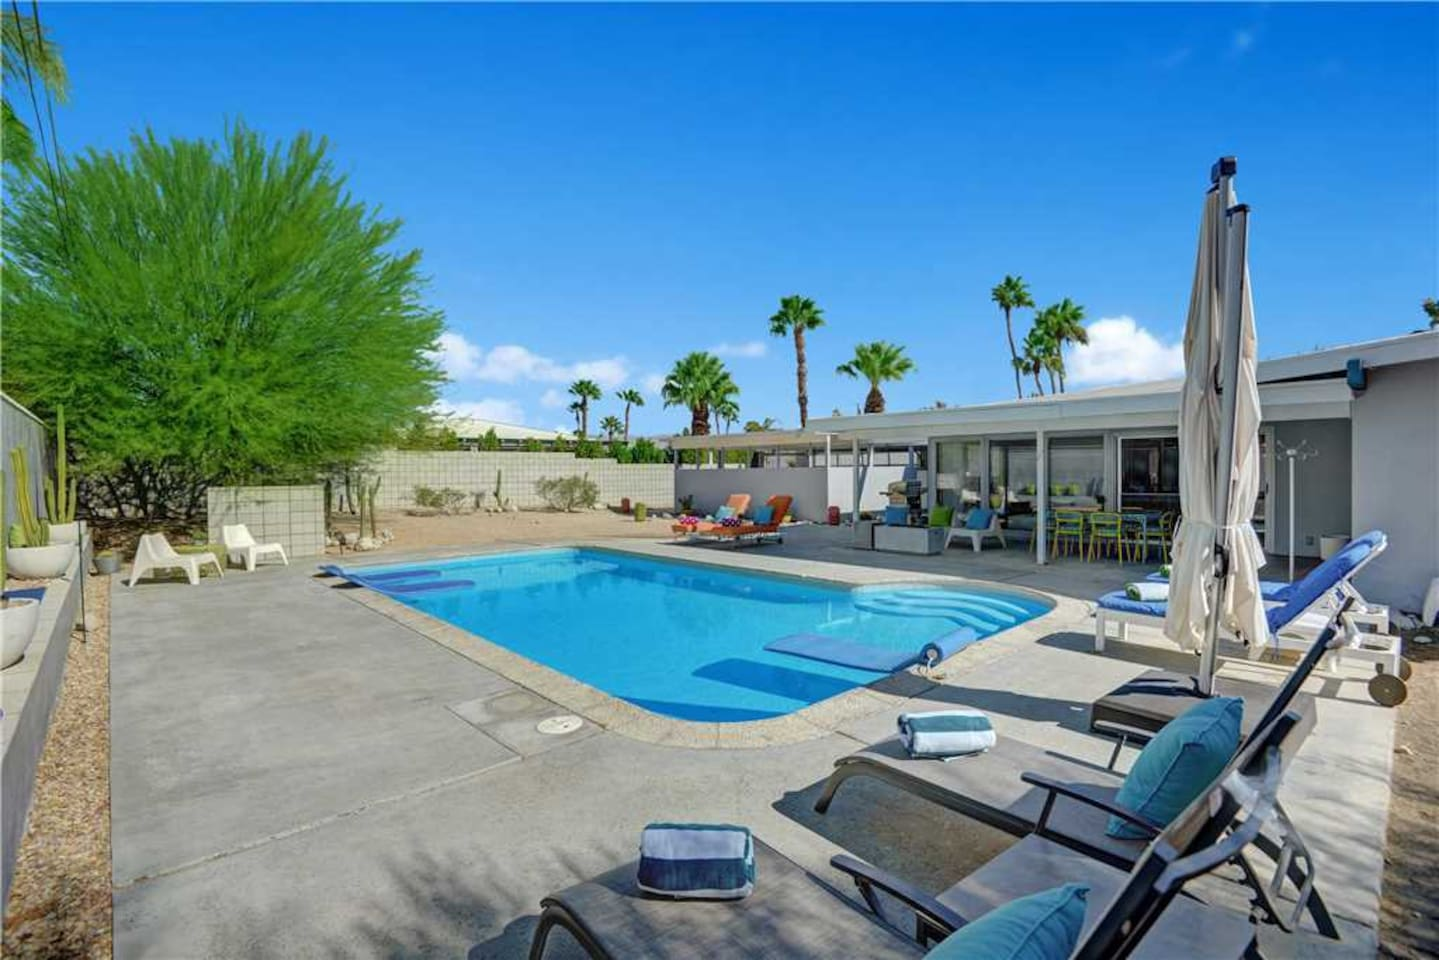 OVER CHAISE - Oranj Palm Vacation Homes